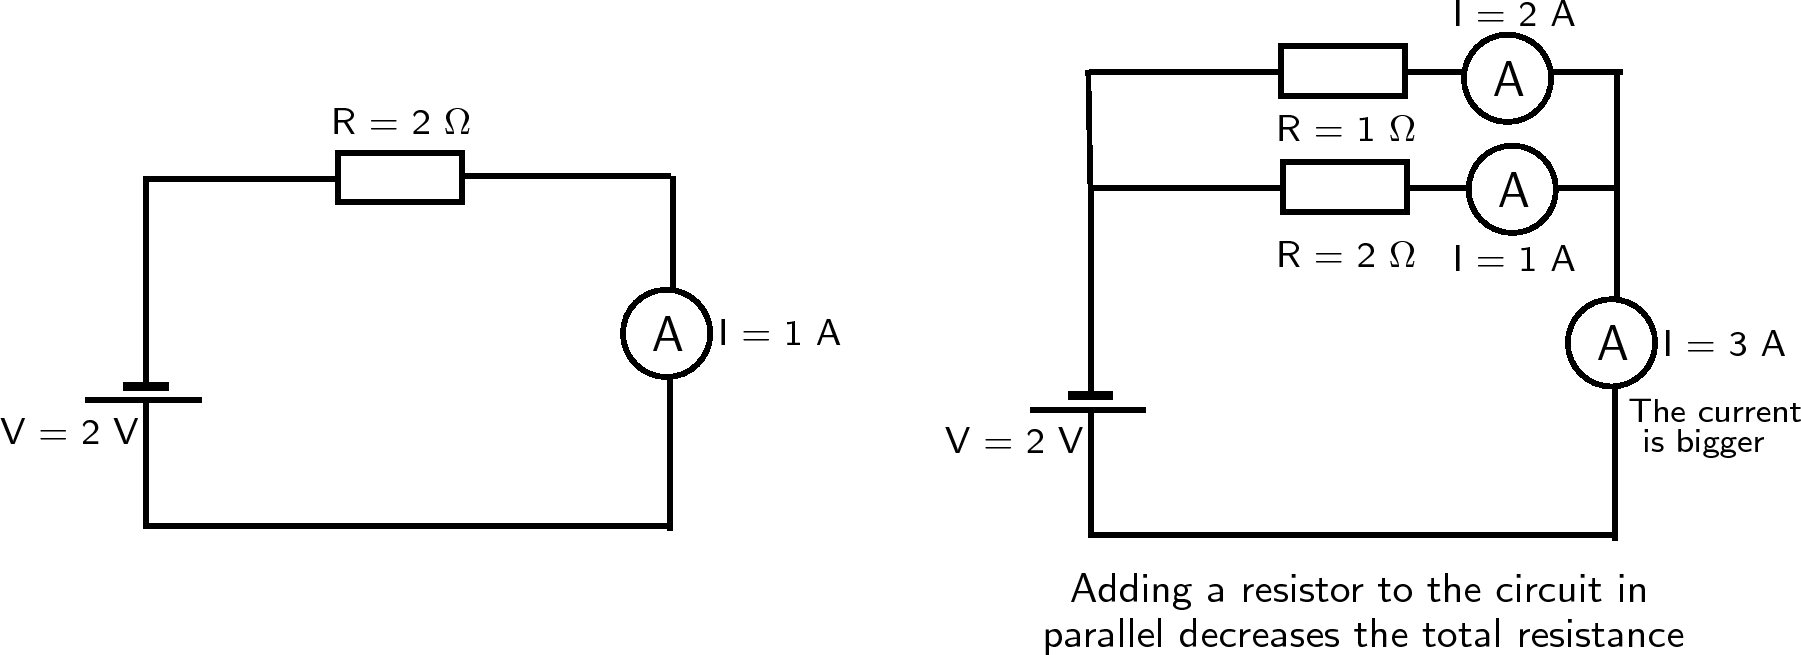 electrical schematic wiring in parallel